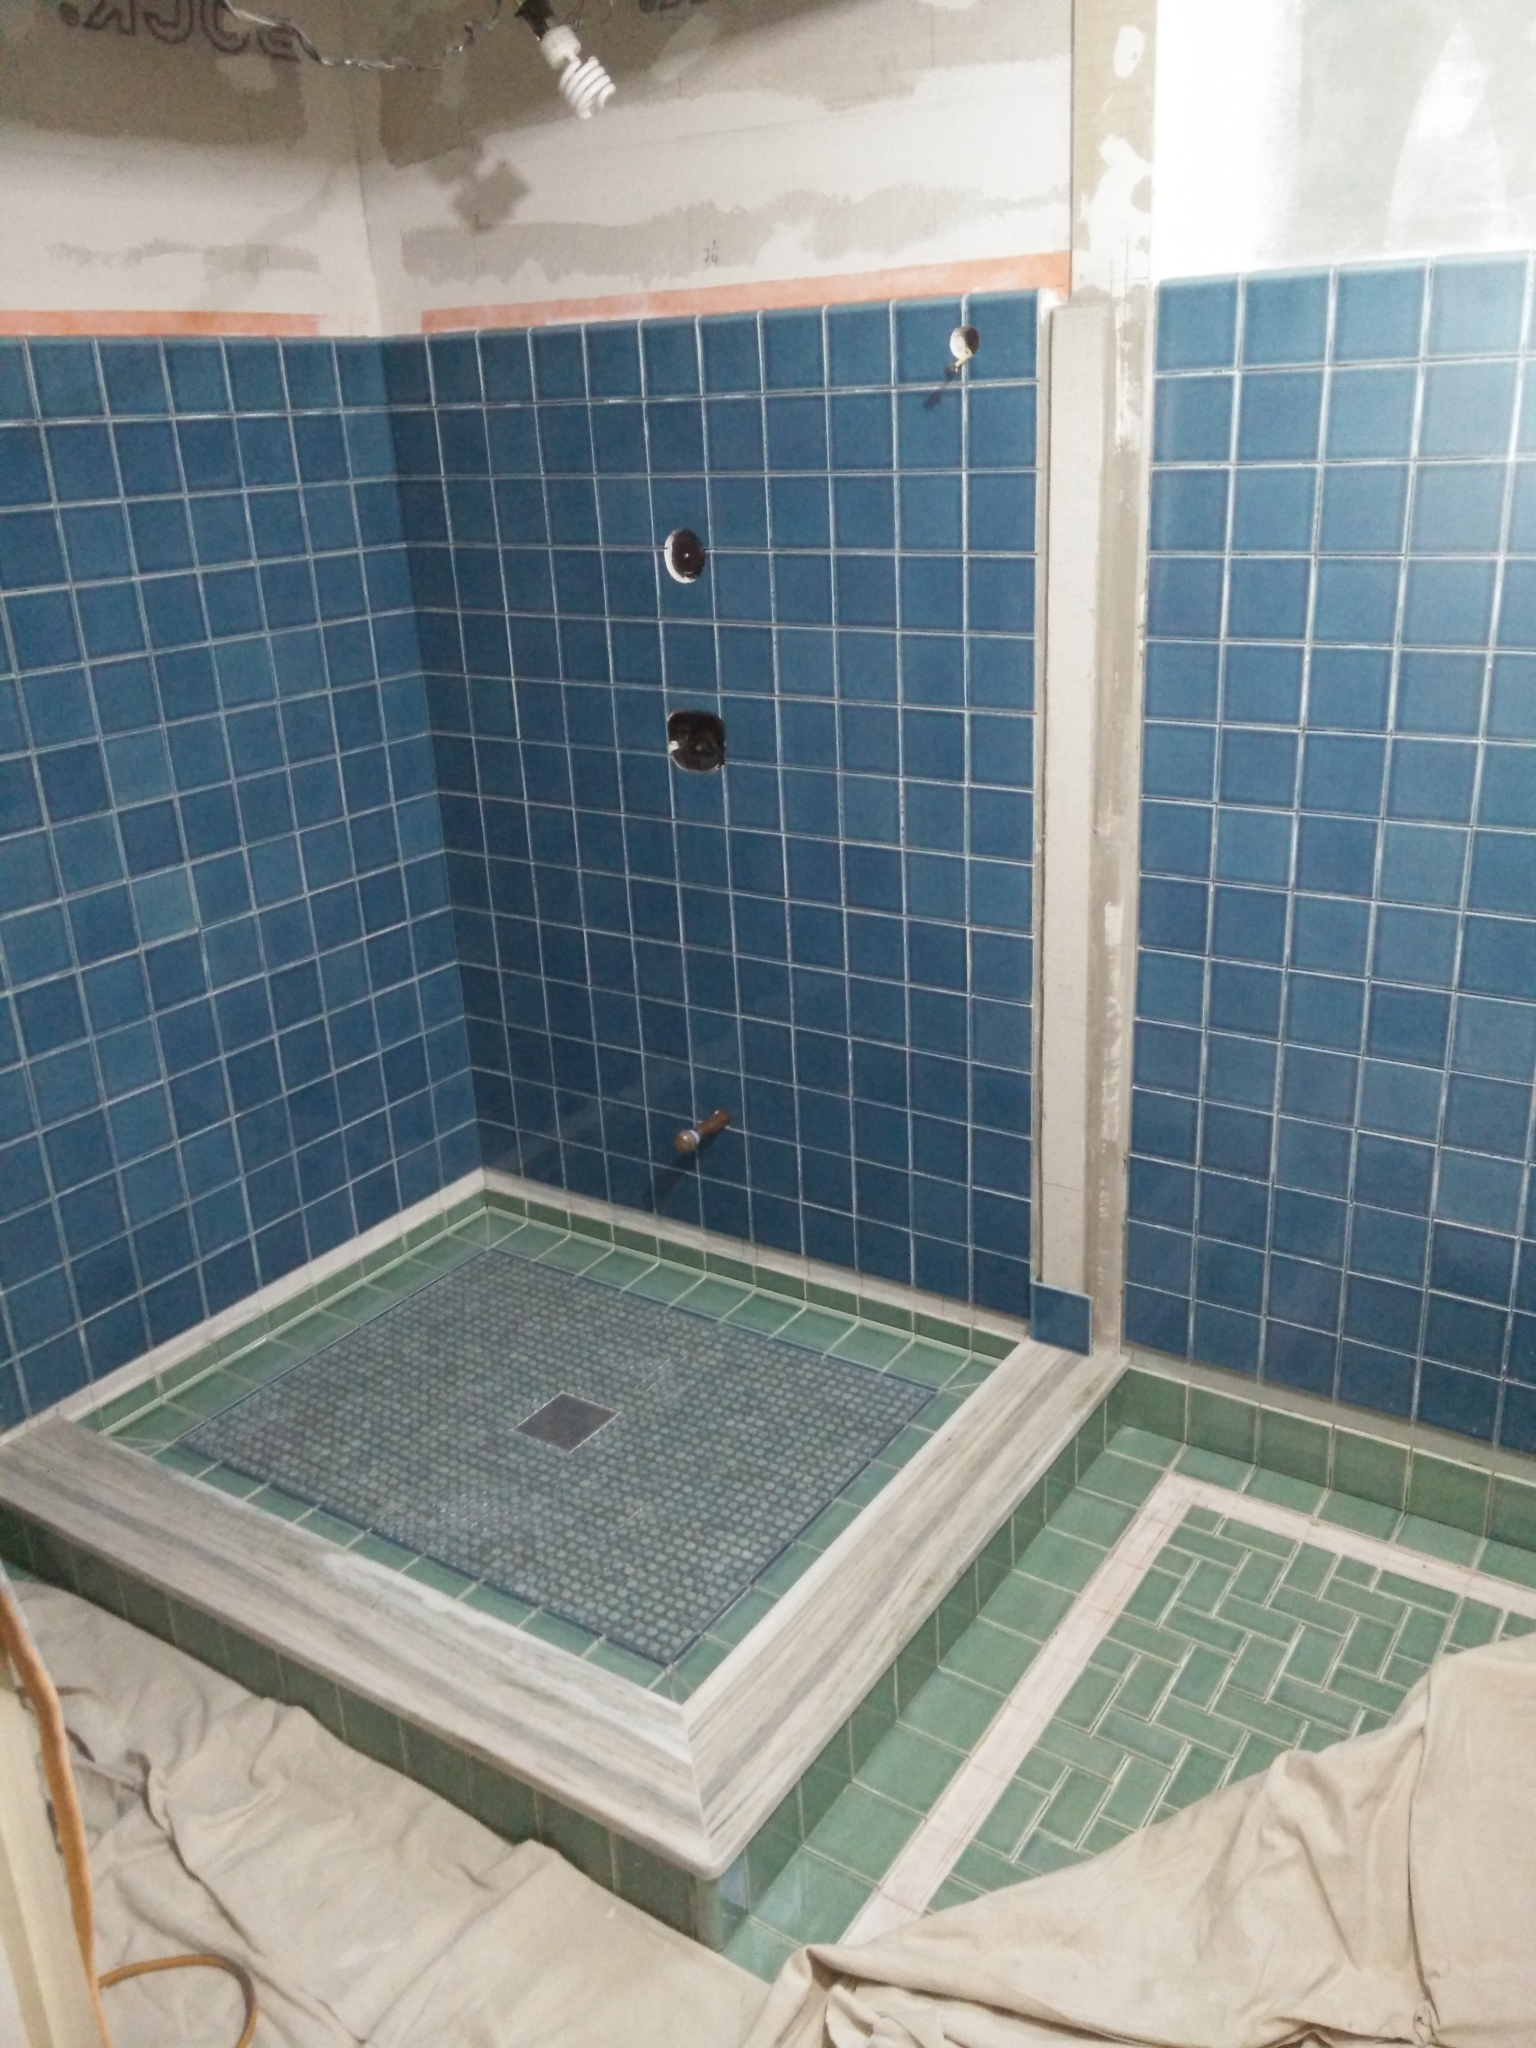 How long will it take to tile my bathroom?